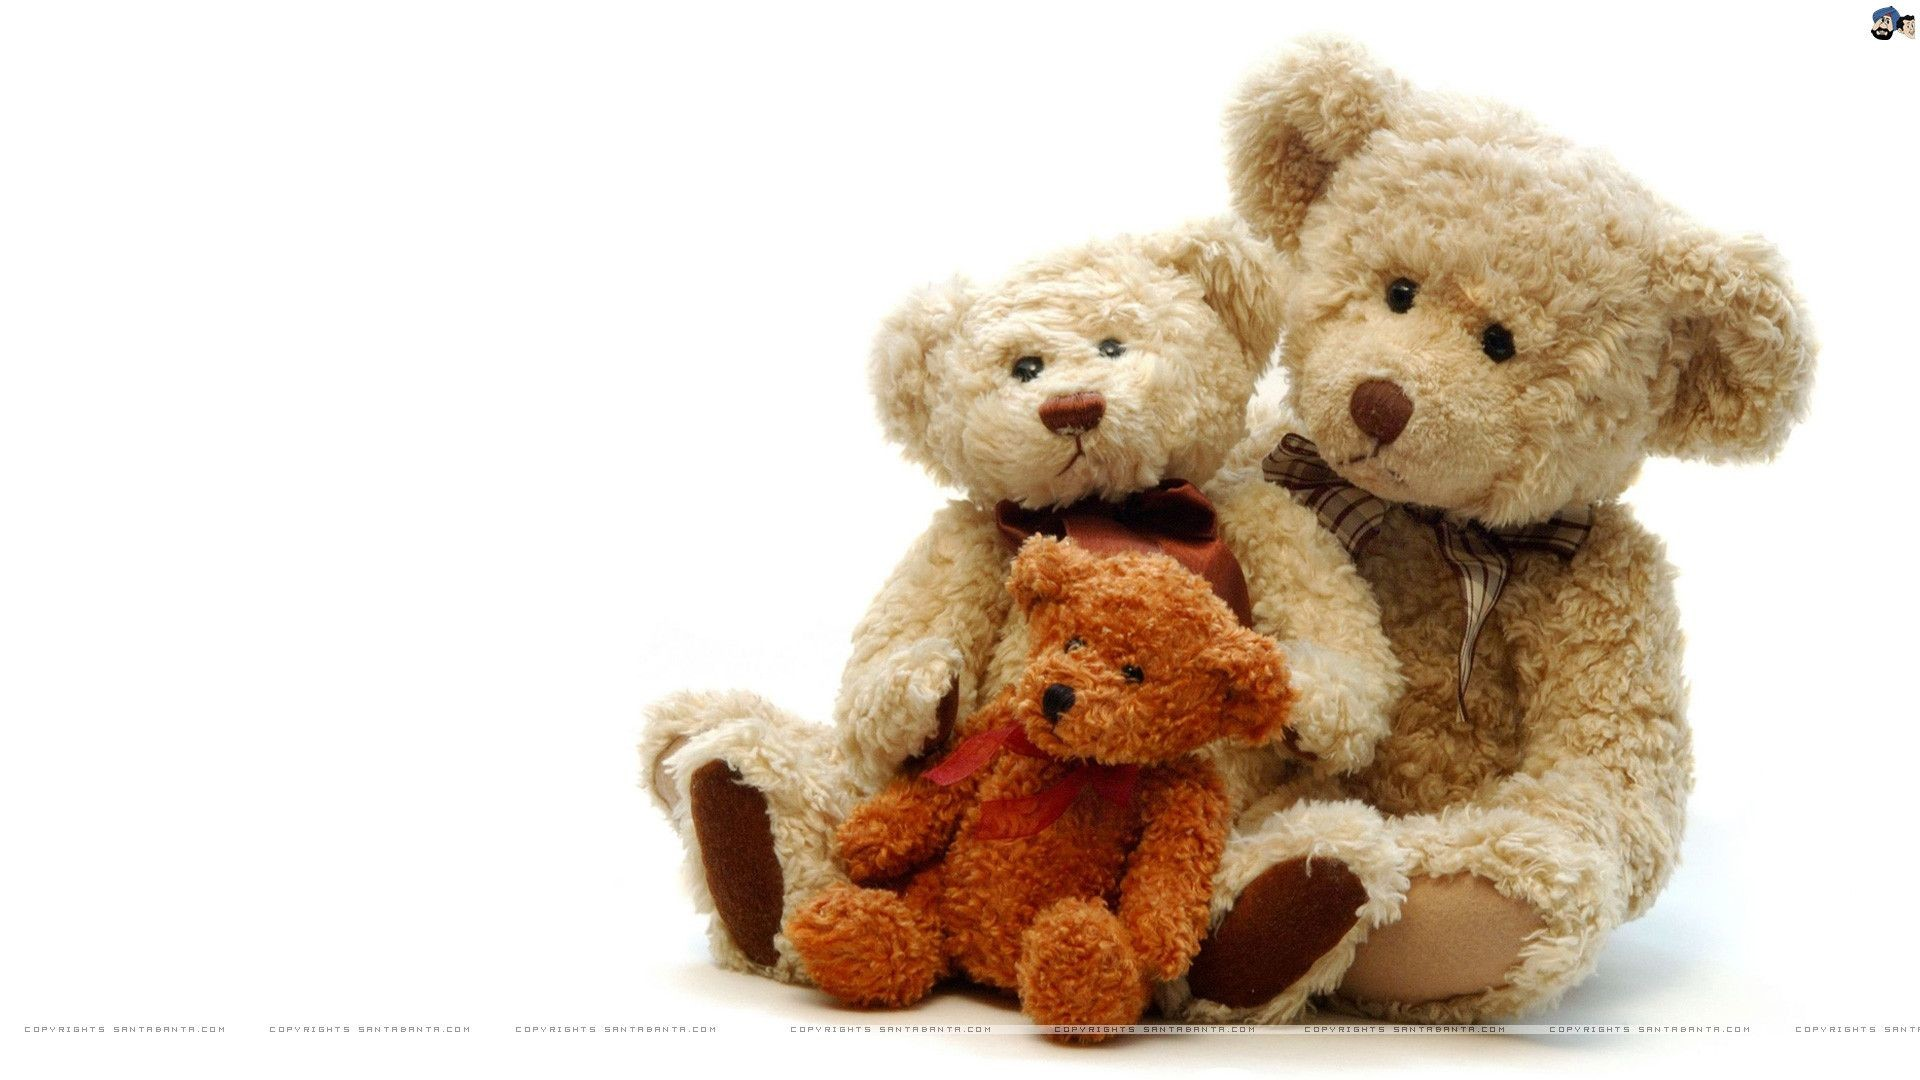 Res: 1920x1080, Teddy Bear Wallpapers by Spring Doughty on Wallpapers and Pictures – free  download